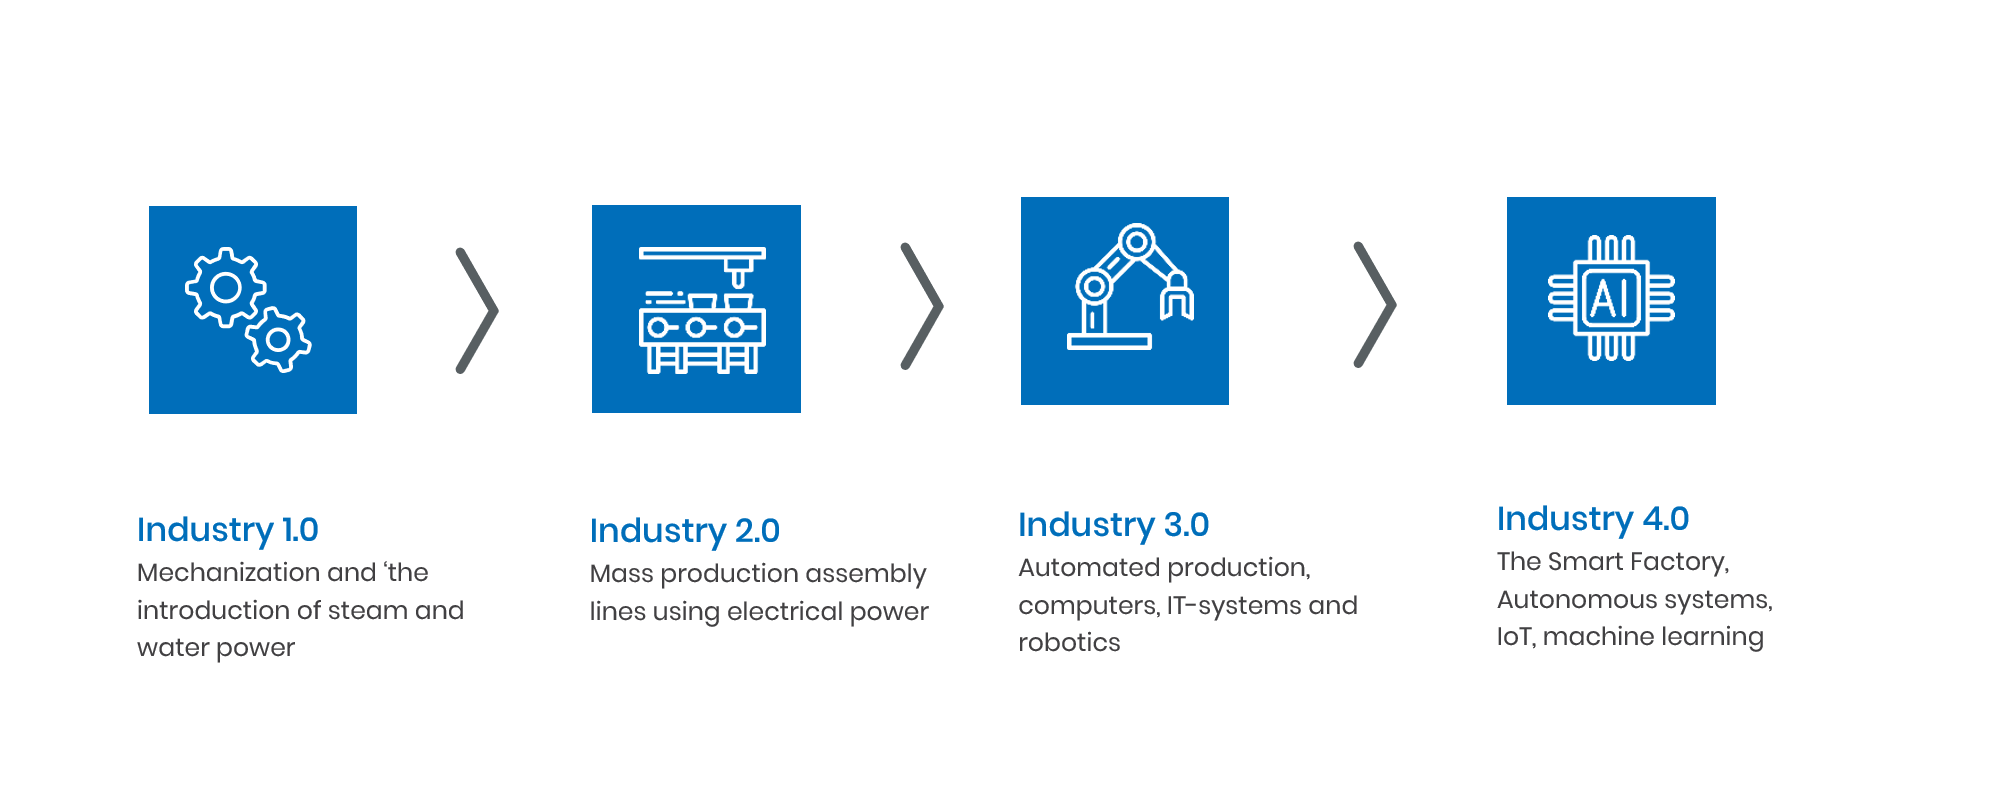 industry 4.0 and supply chain